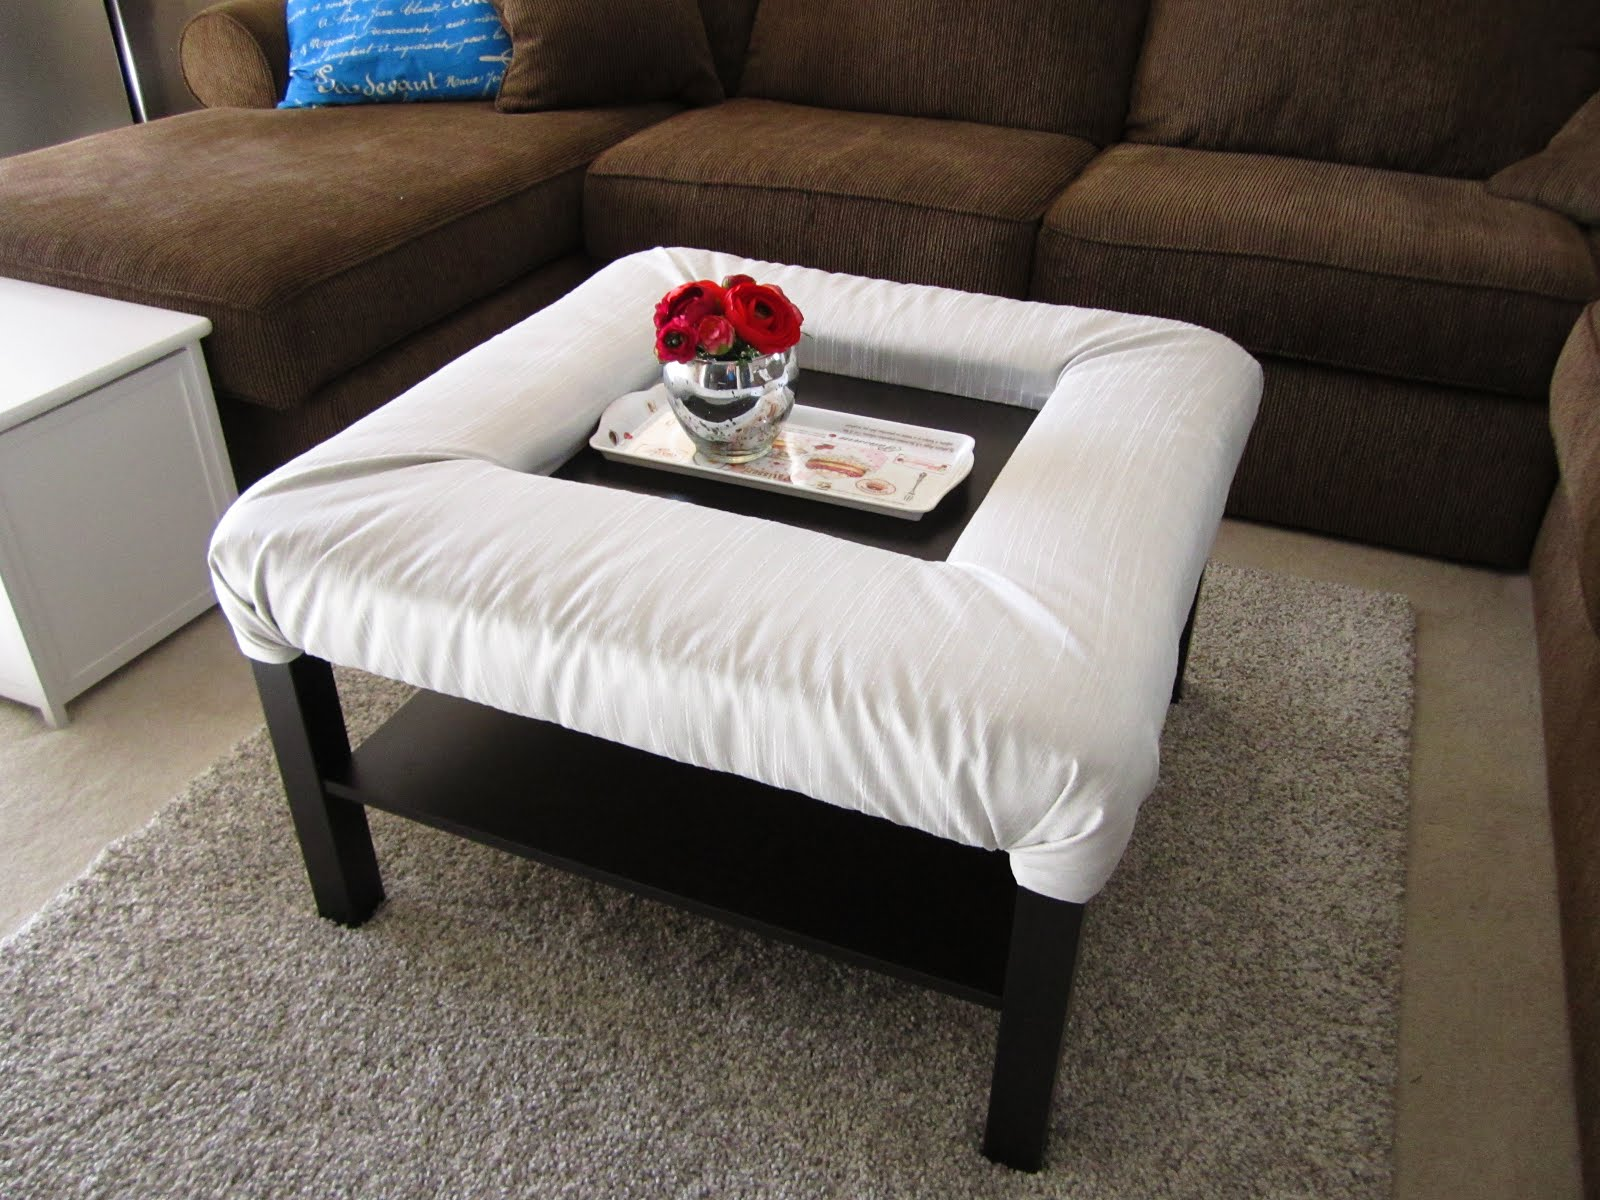 Lack Coffee Table with footrest - IKEA Hackers - IKEA Hackers